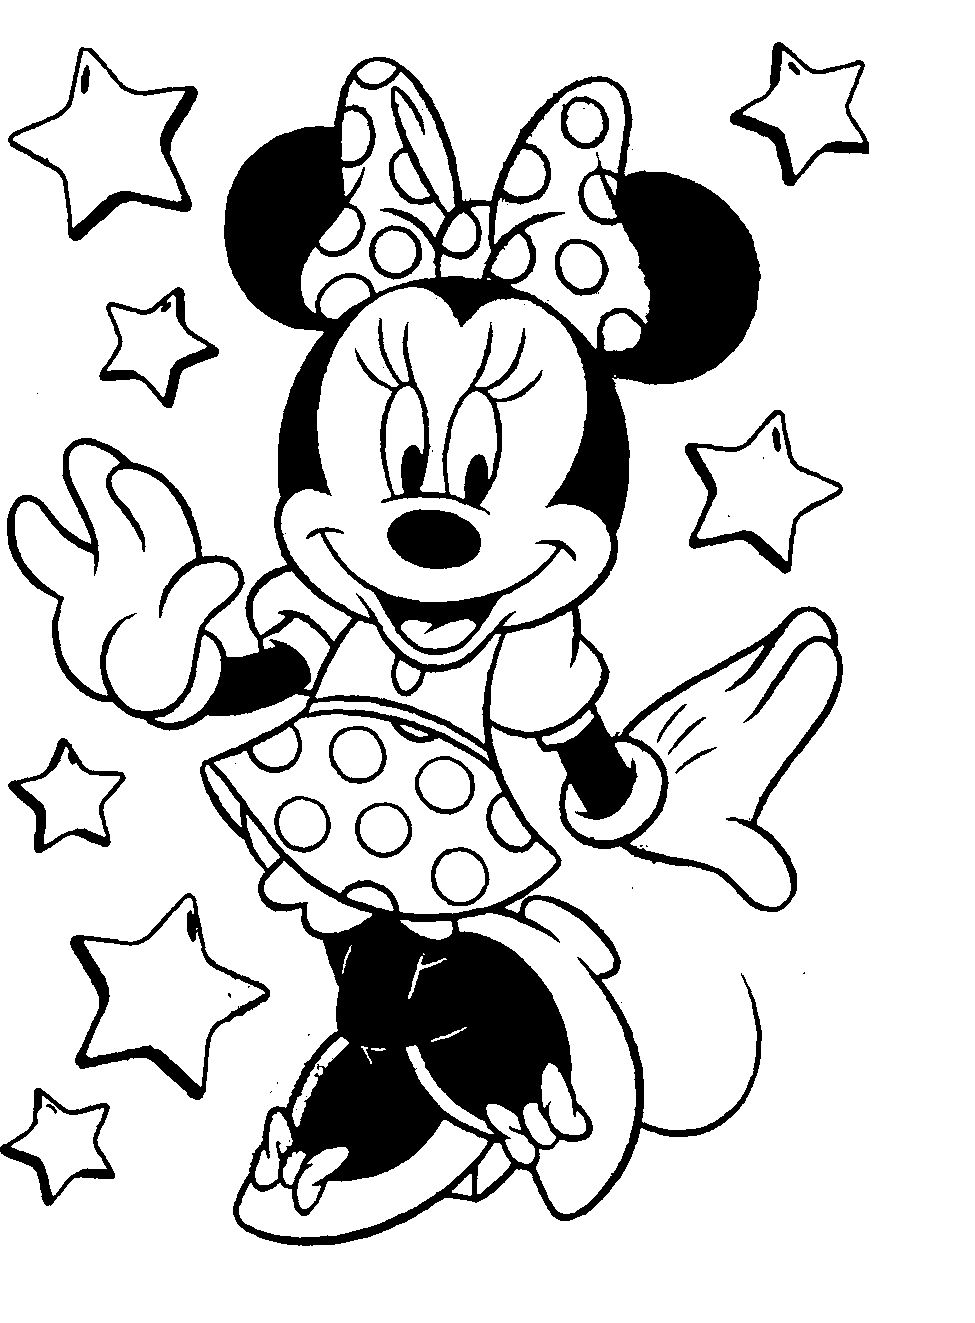 Mickey Mouse Geburtstag Ausmalbilder : Coloring Pictures Of Minnie Mouse Google Search Coloring Pages